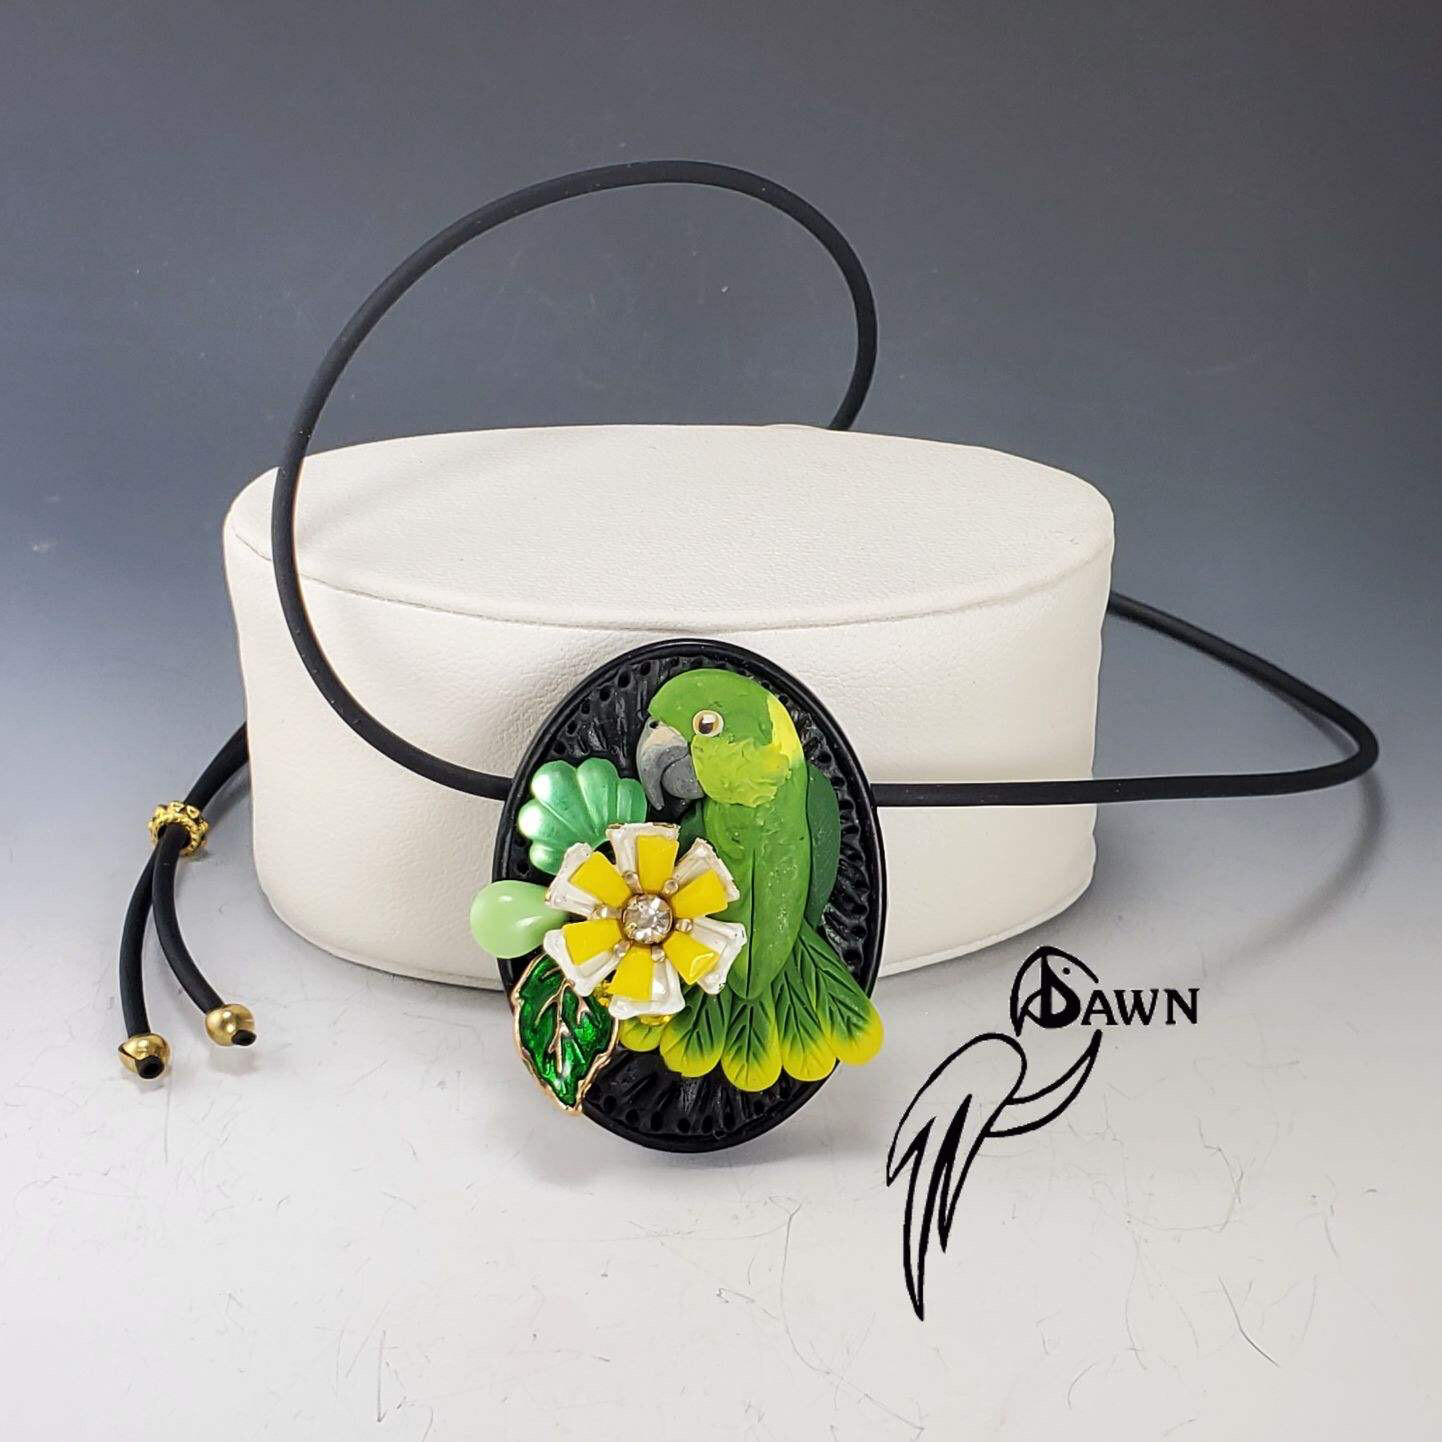 FIDs of Beauty Parrot Necklaces by Dawn